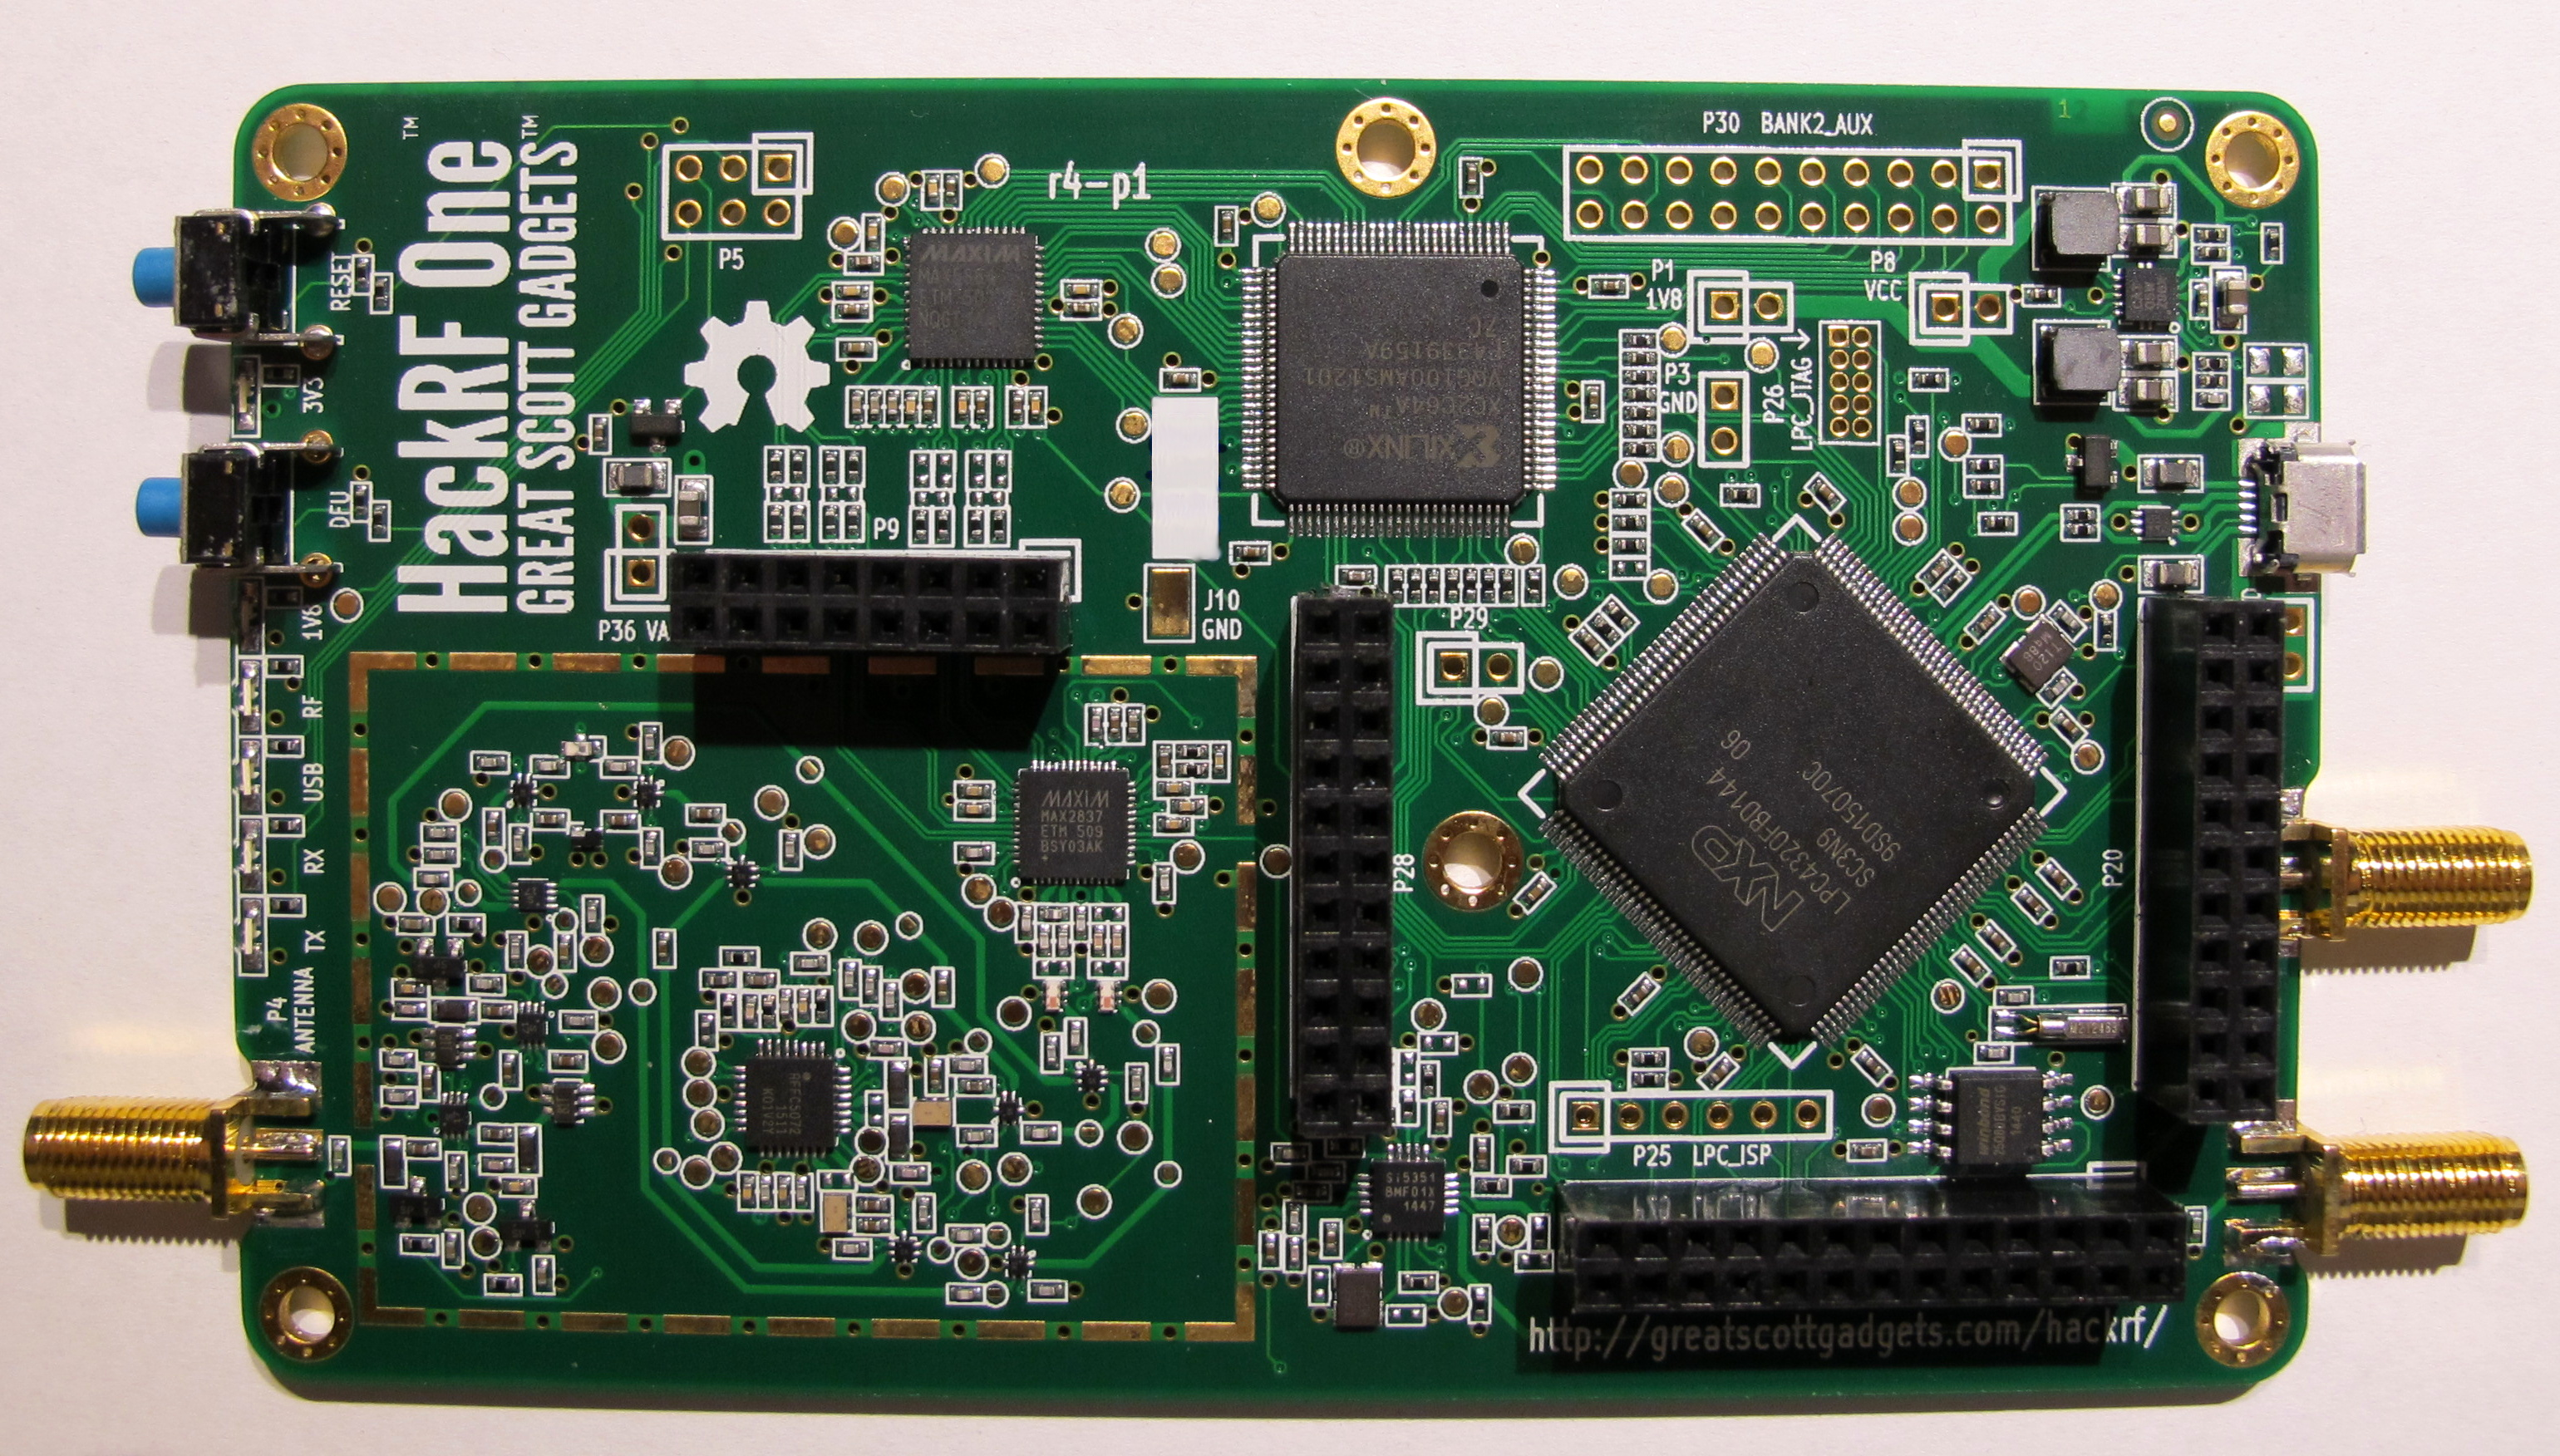 Filesdr Hackrf One Pcb Wikimedia Commons Printed Circuit Board 13 Royalty Free Stock Photos Image